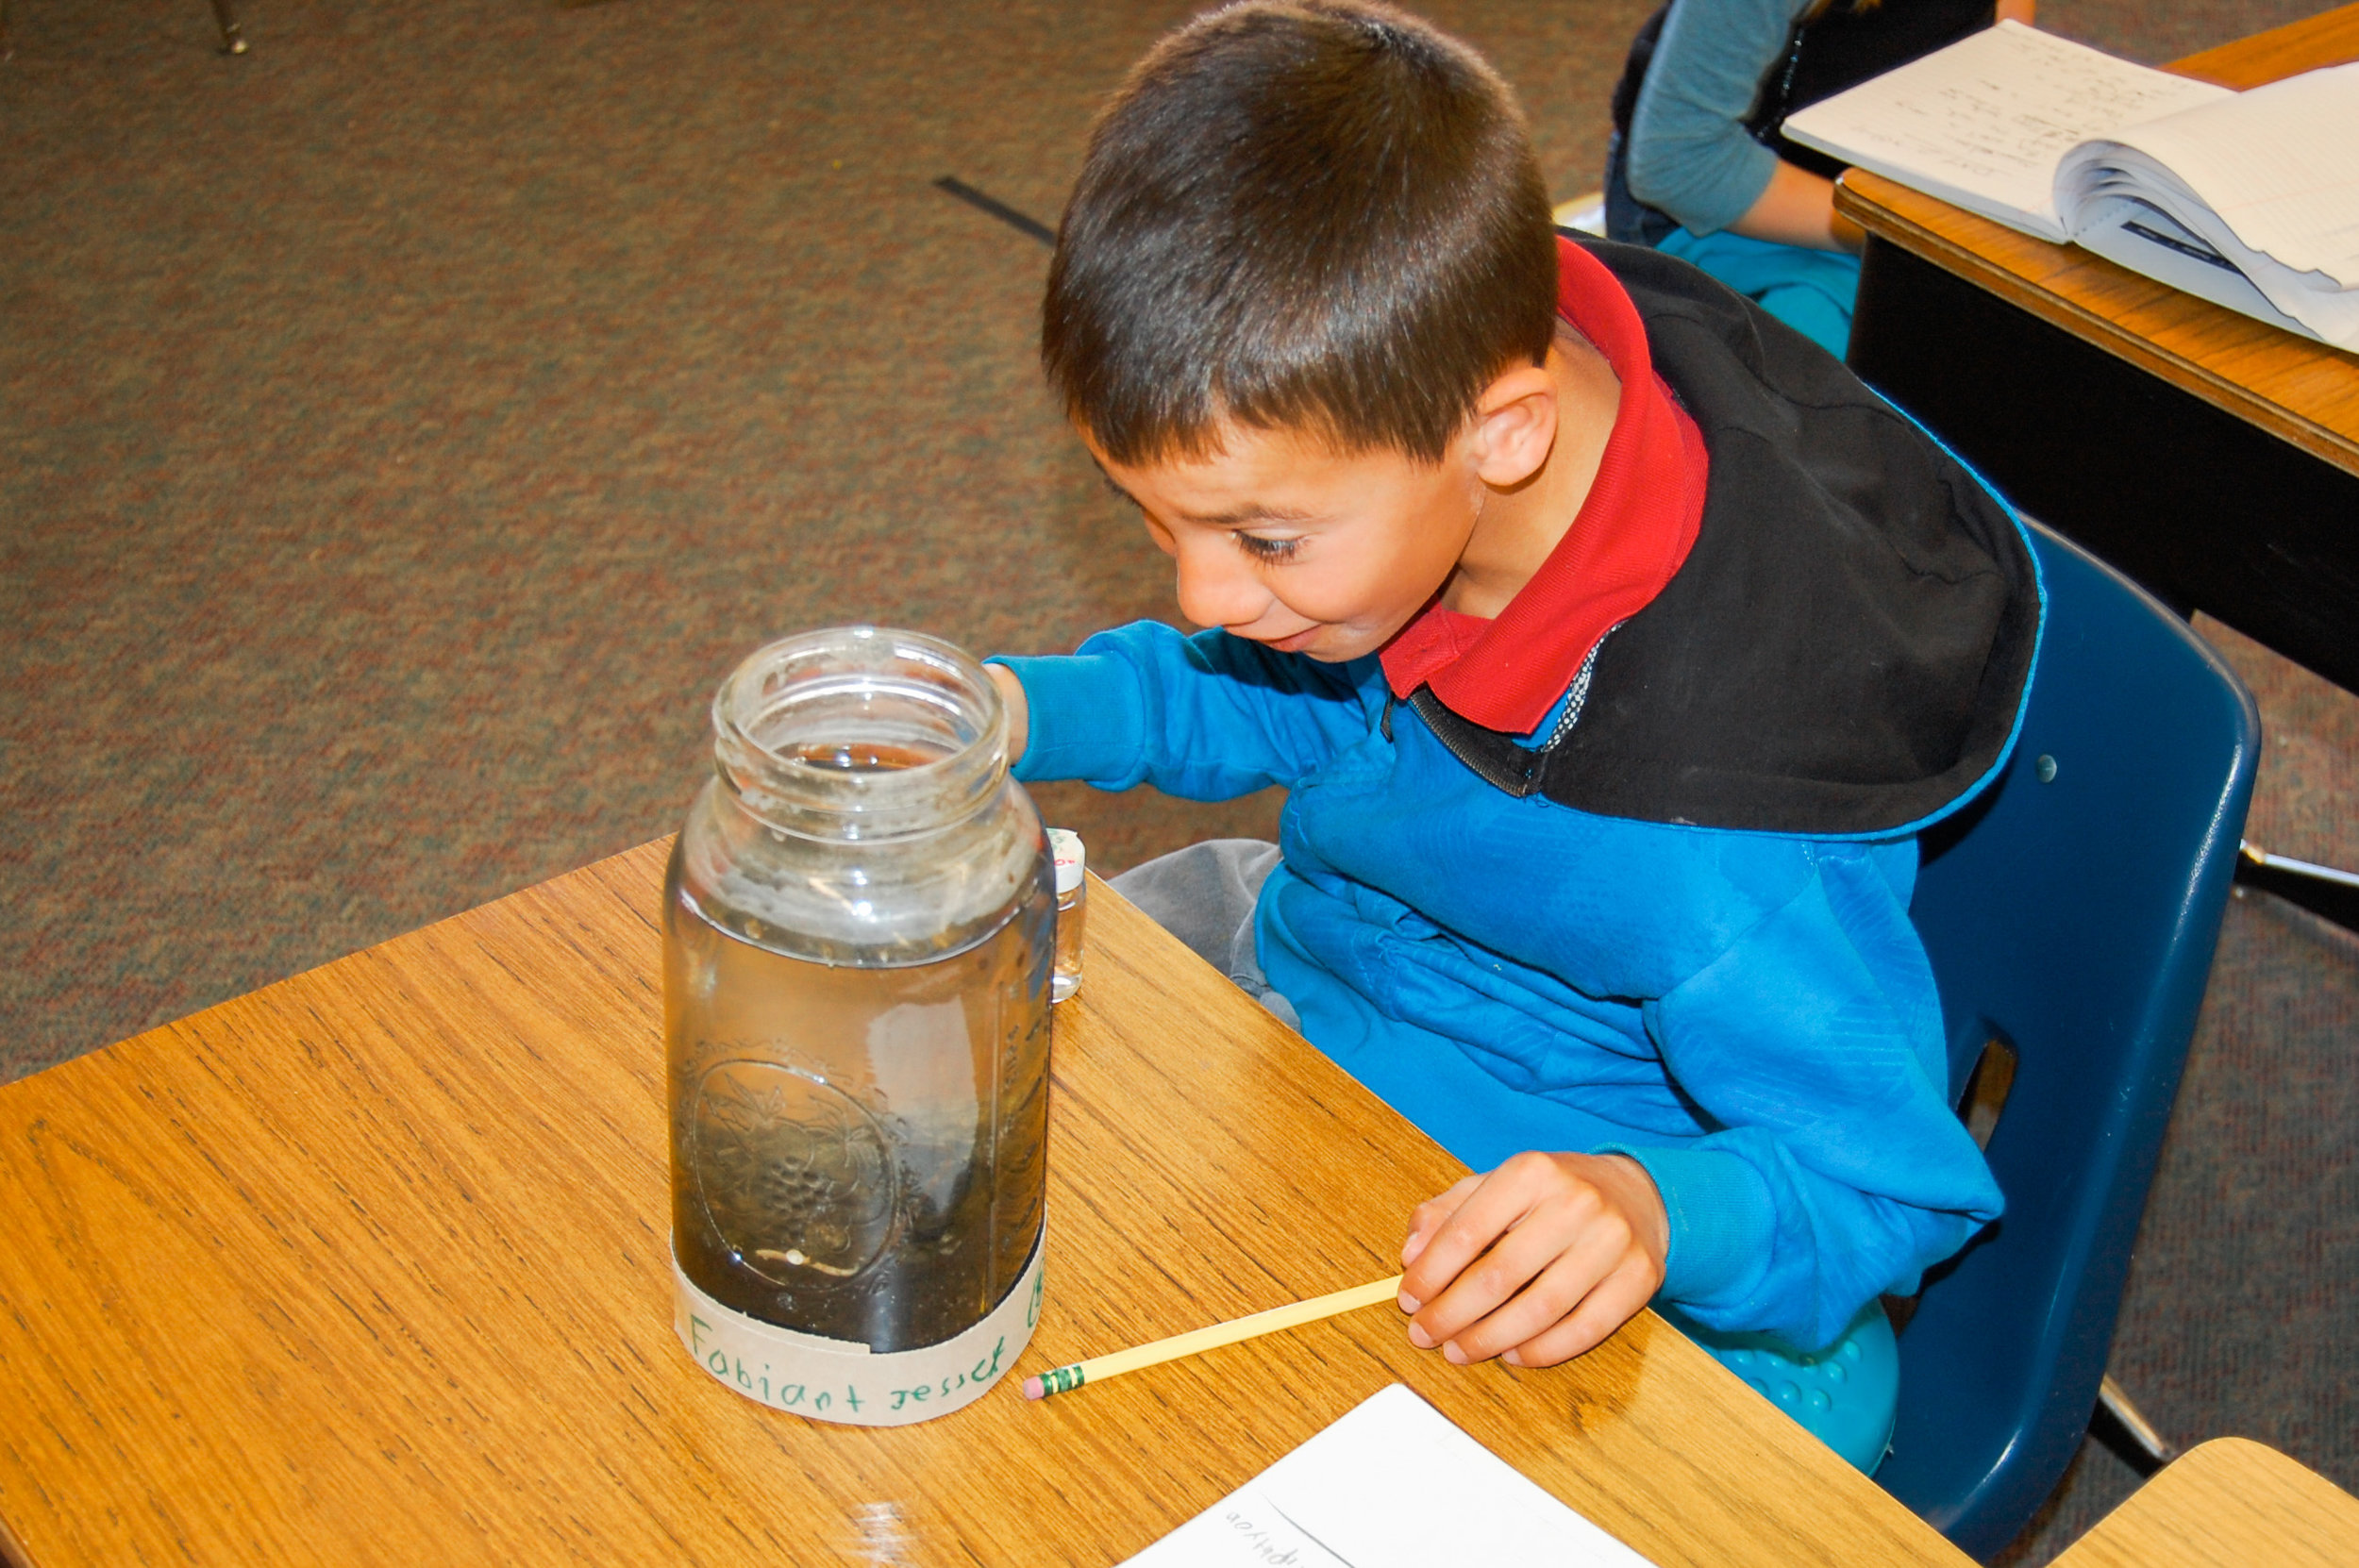 This expression says it all! Students are amazed to watch a pond ecosystem develop in a jar. Hands-on, content-rich and fun.....how education should be!